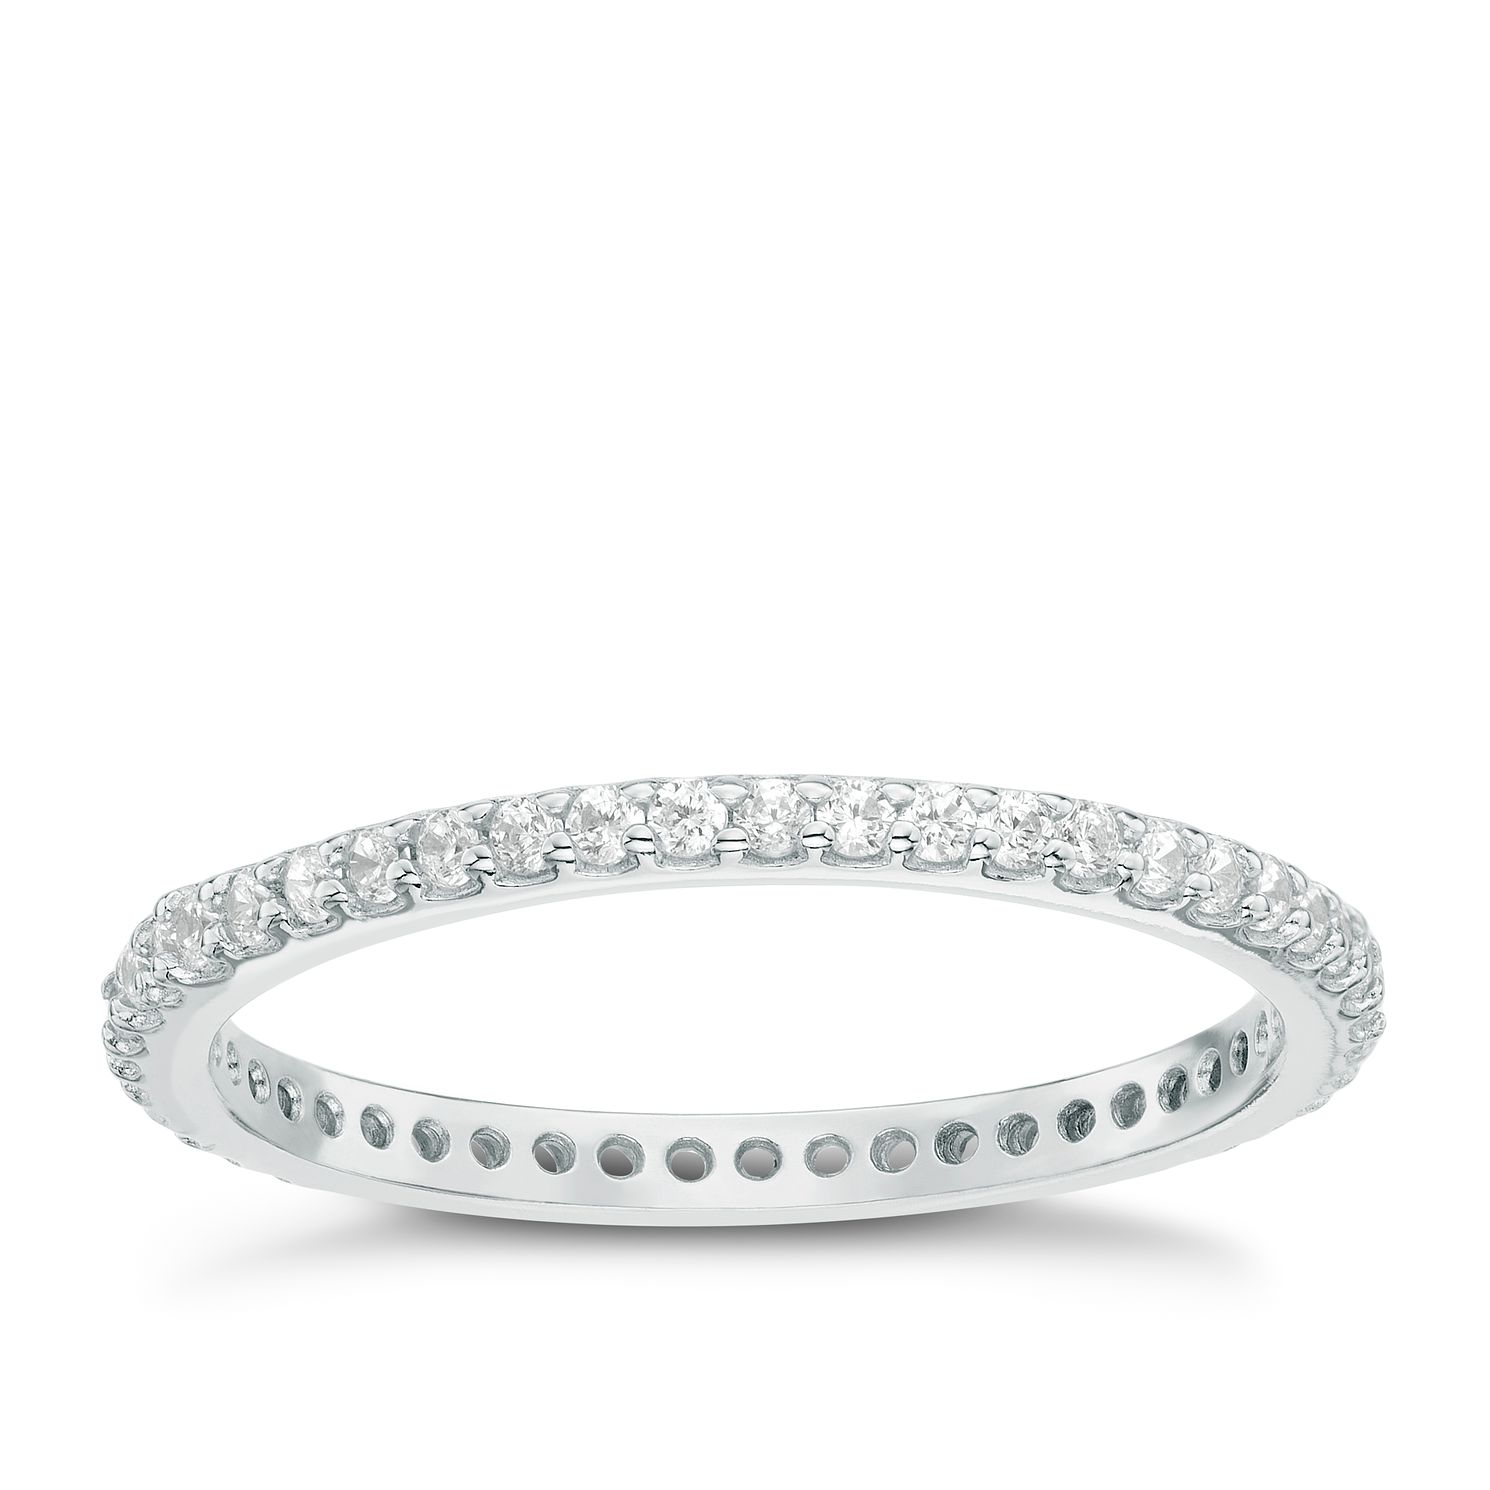 Sterling Silver Cubic Zirconia Set Full Eternity Ring Size N - Product number 6084044